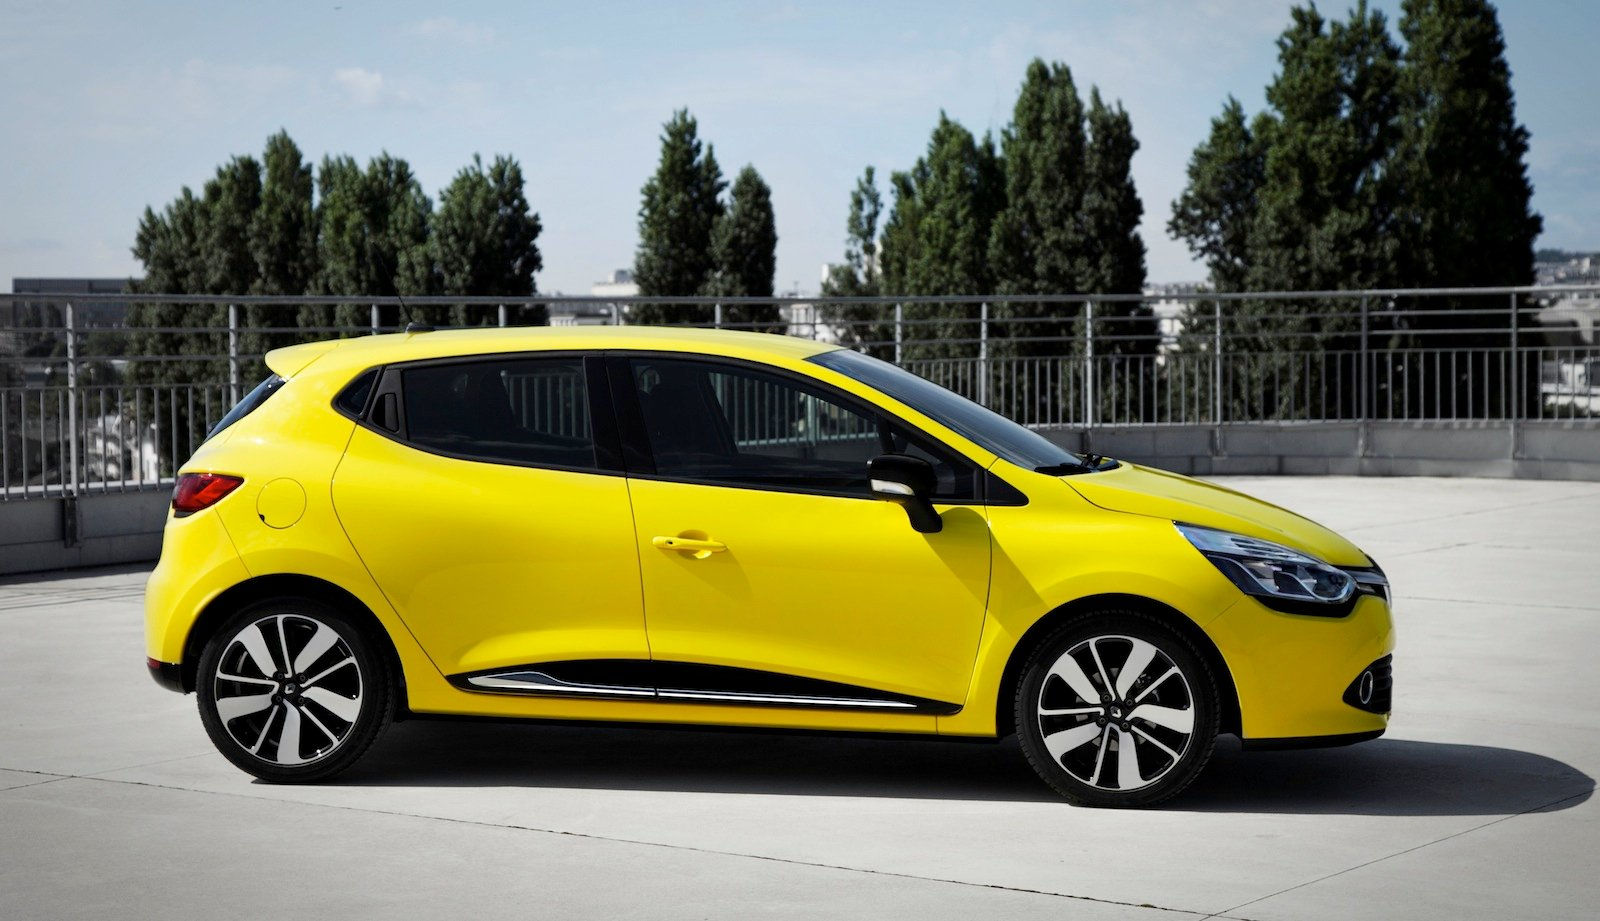 renault clio french city car here in mid 2013 photos caradvice